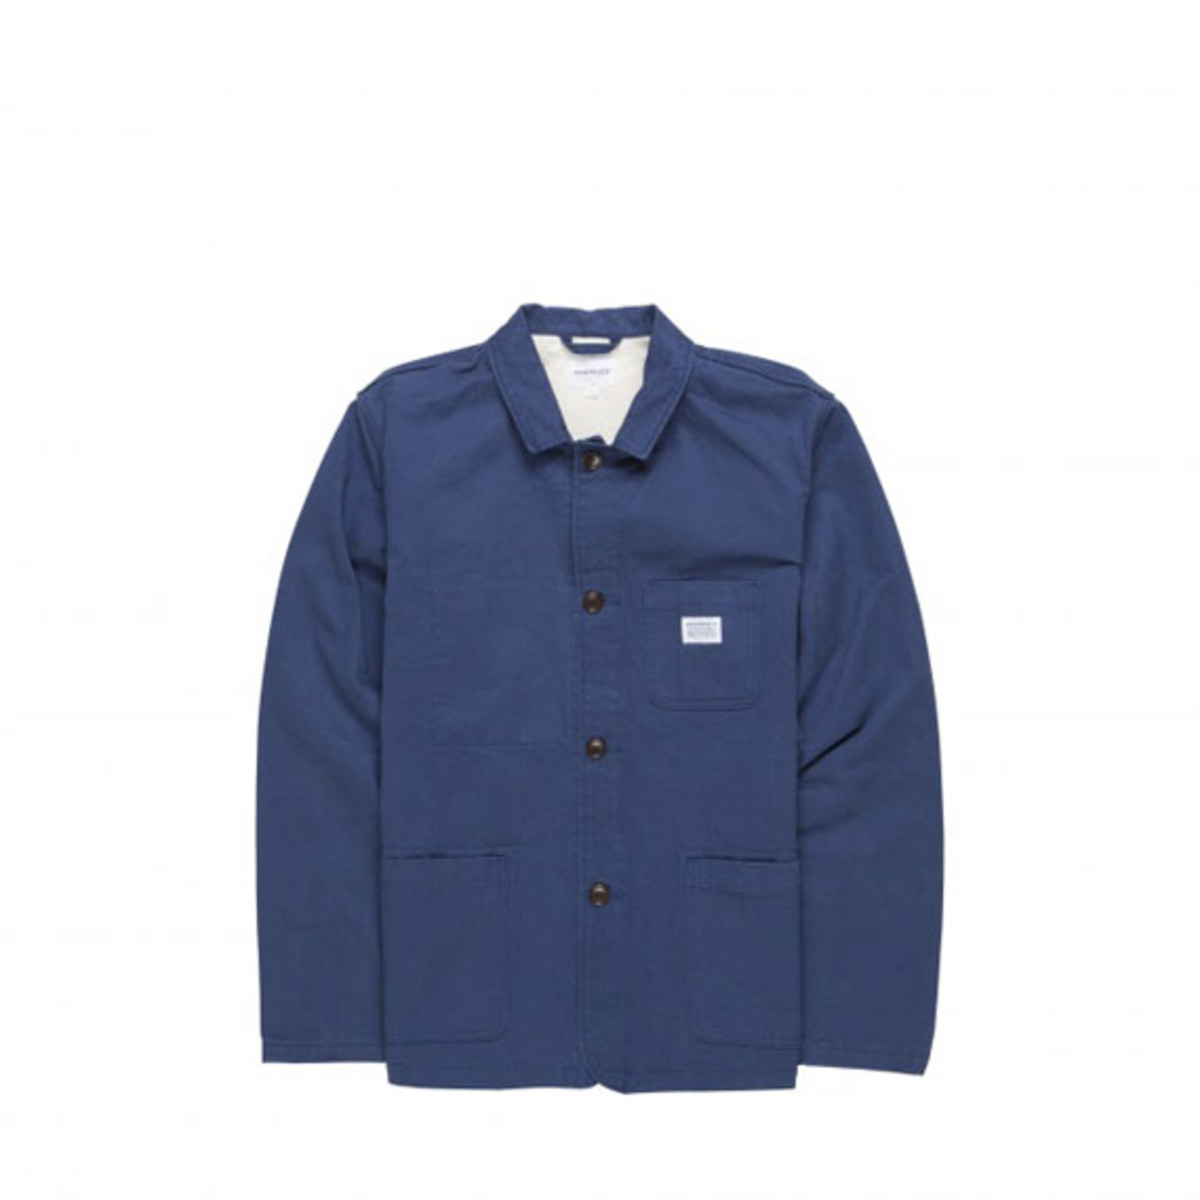 norse-projects-fall-winter-2013-collection-26